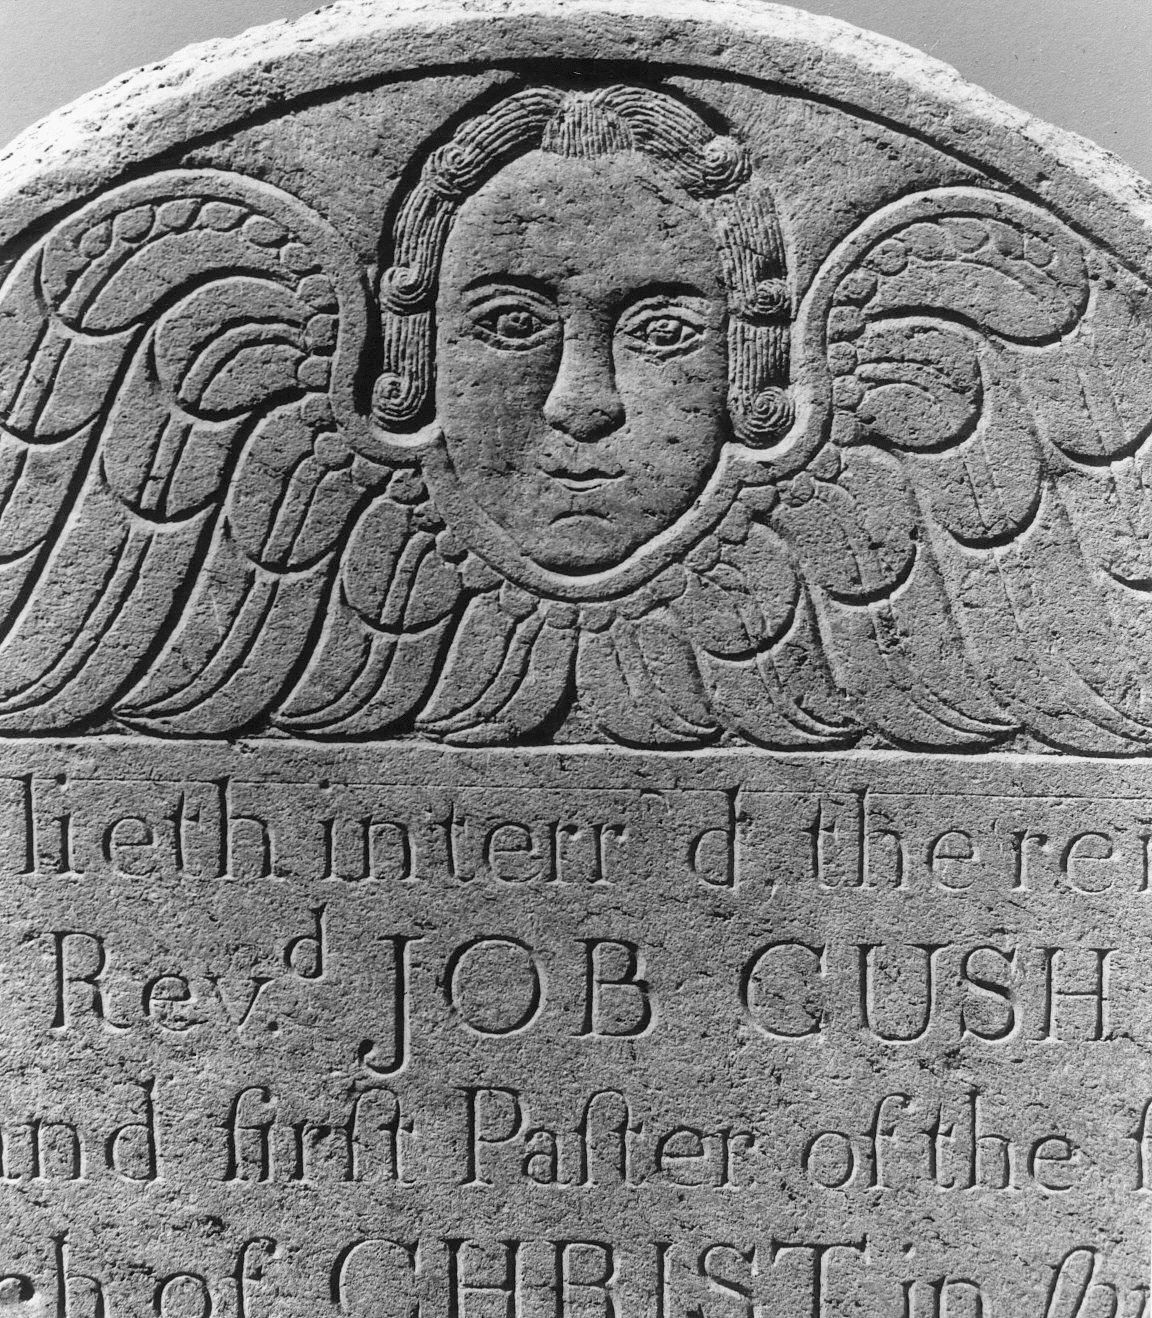 Cushing, Rev. Job M.A.